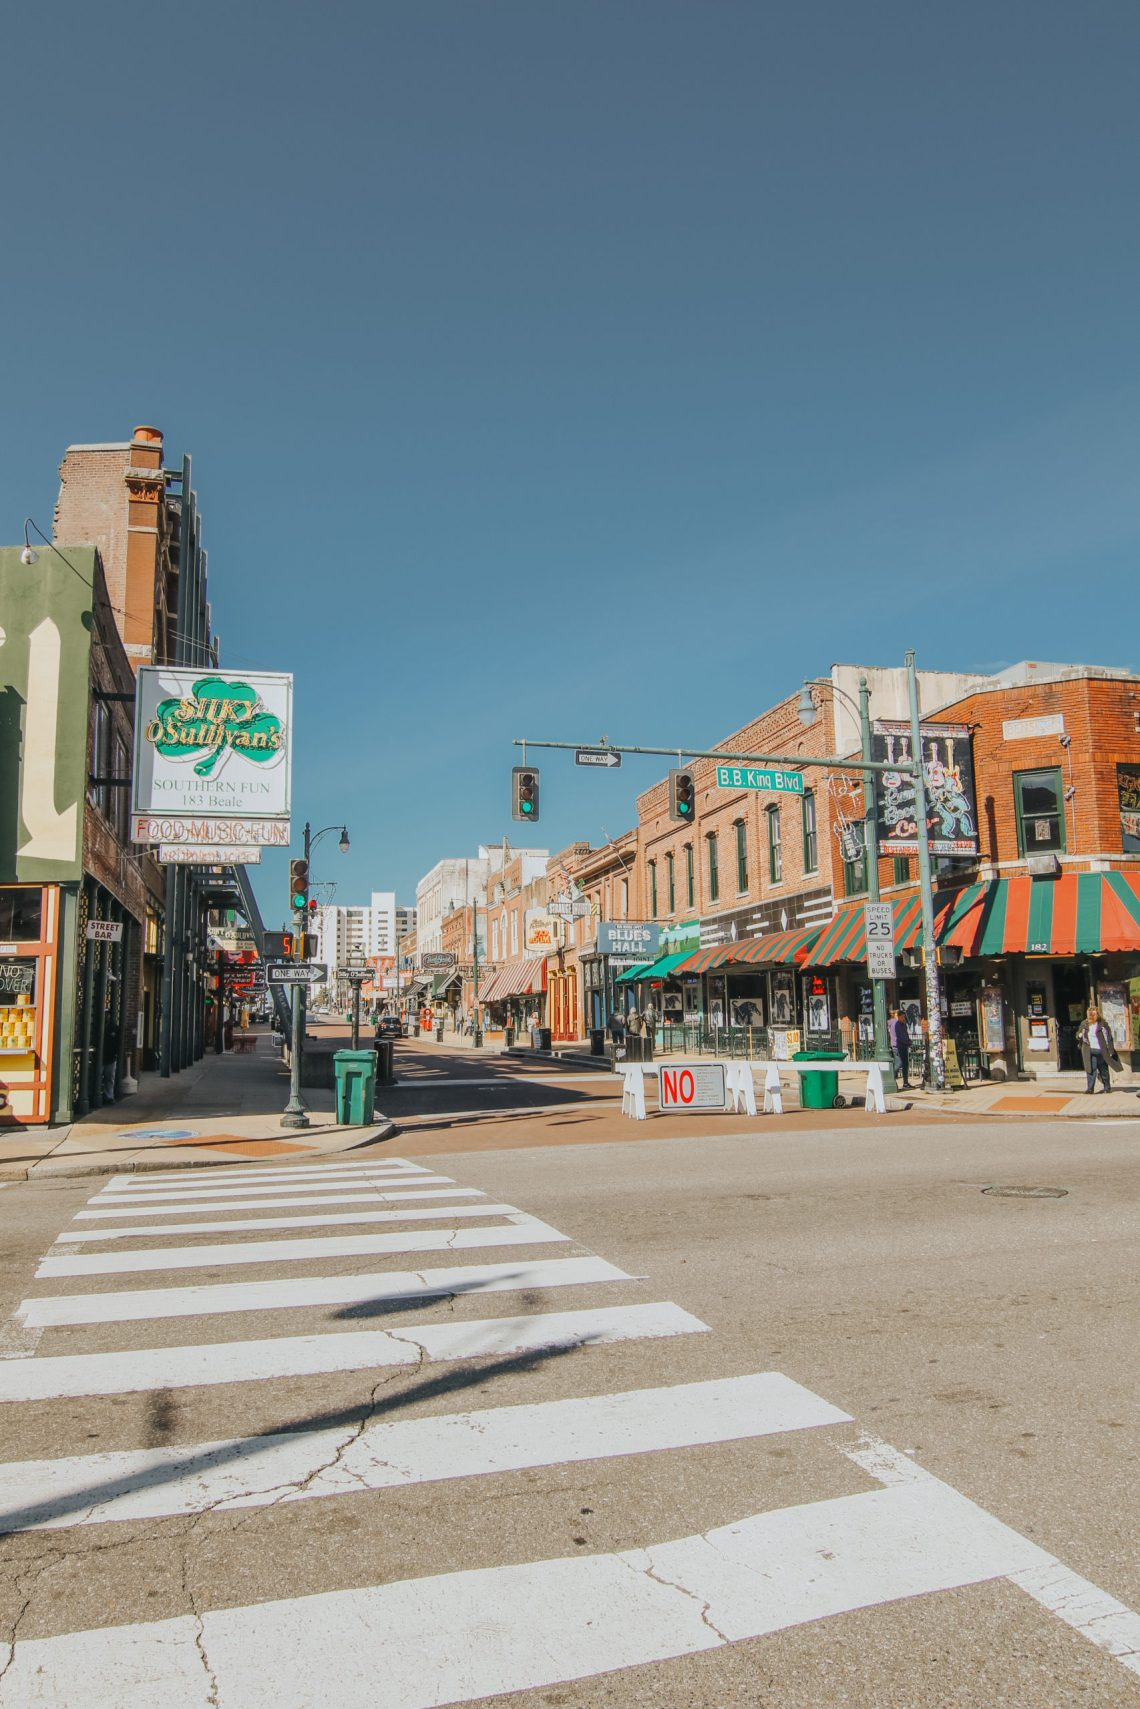 Beale Street, Blues, Memphis, Tennessee, Memphis Travel Guide, travel guide, The Best Instagram Spots in Memphis, travel, The Urban Darling, fashion, boho fashion, bohemian.